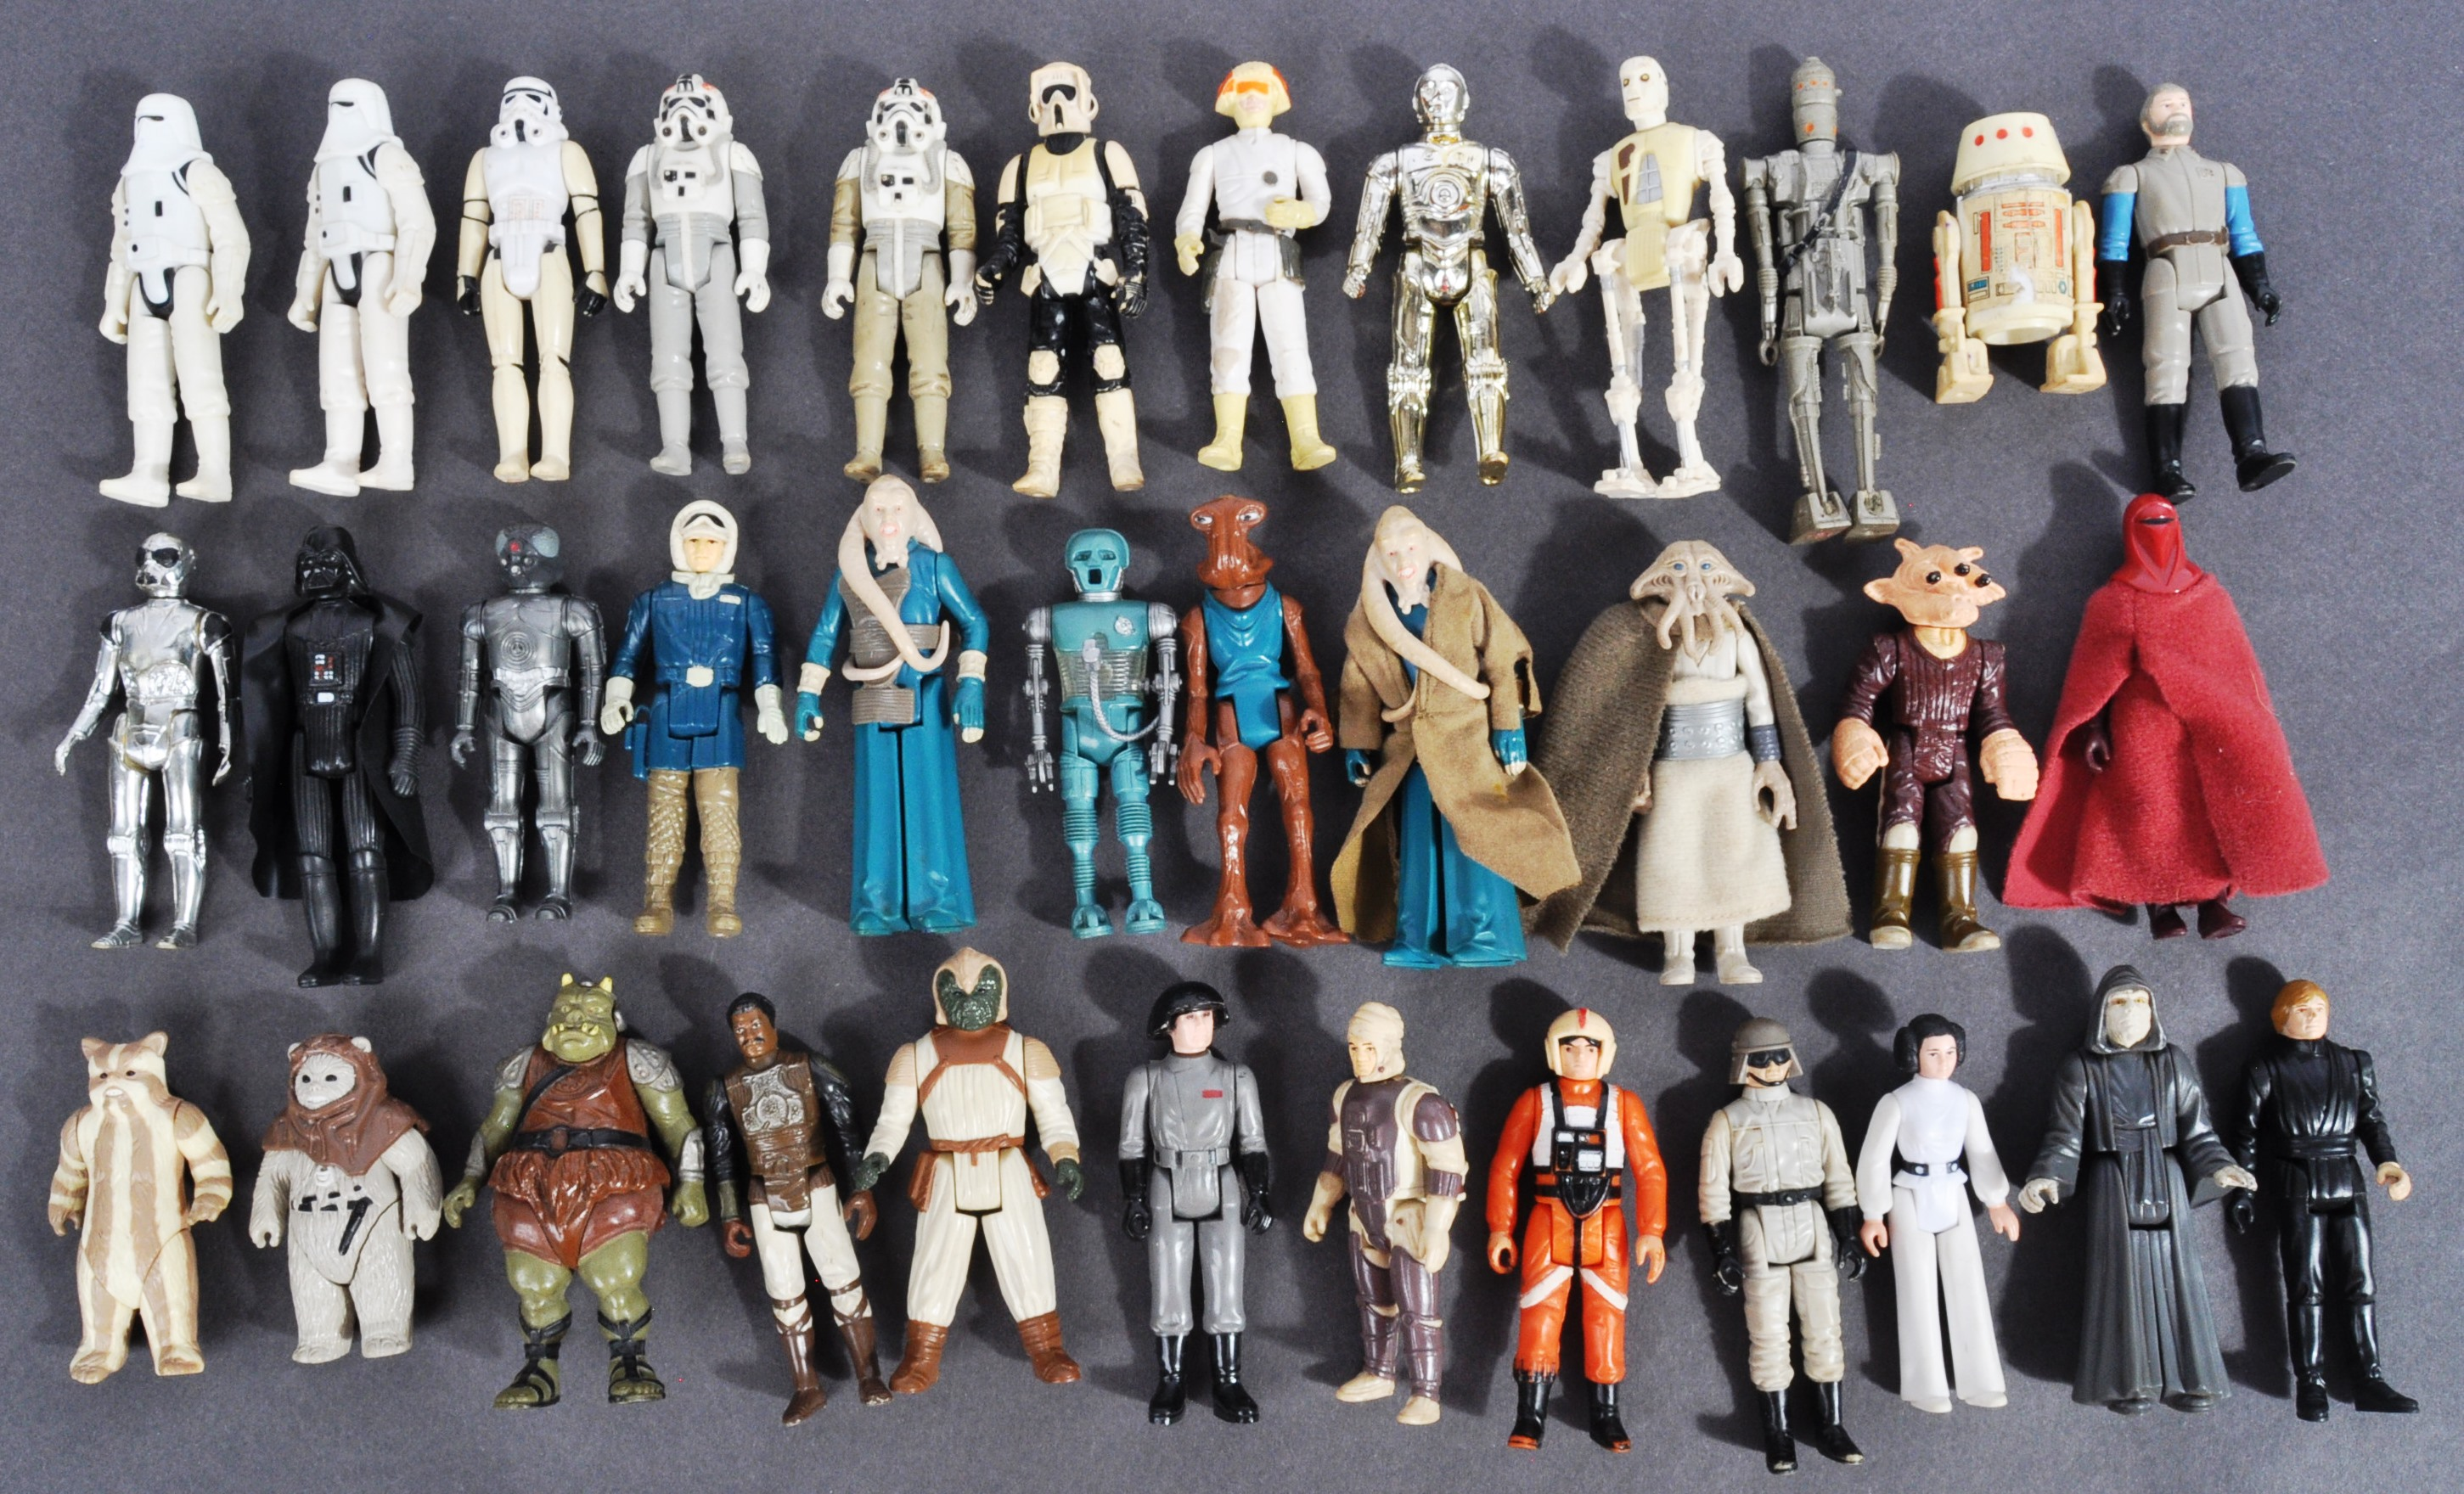 STAR WARS - COLLECTION OF VINTAGE KENNER / PALITOY ACTION FIGURES